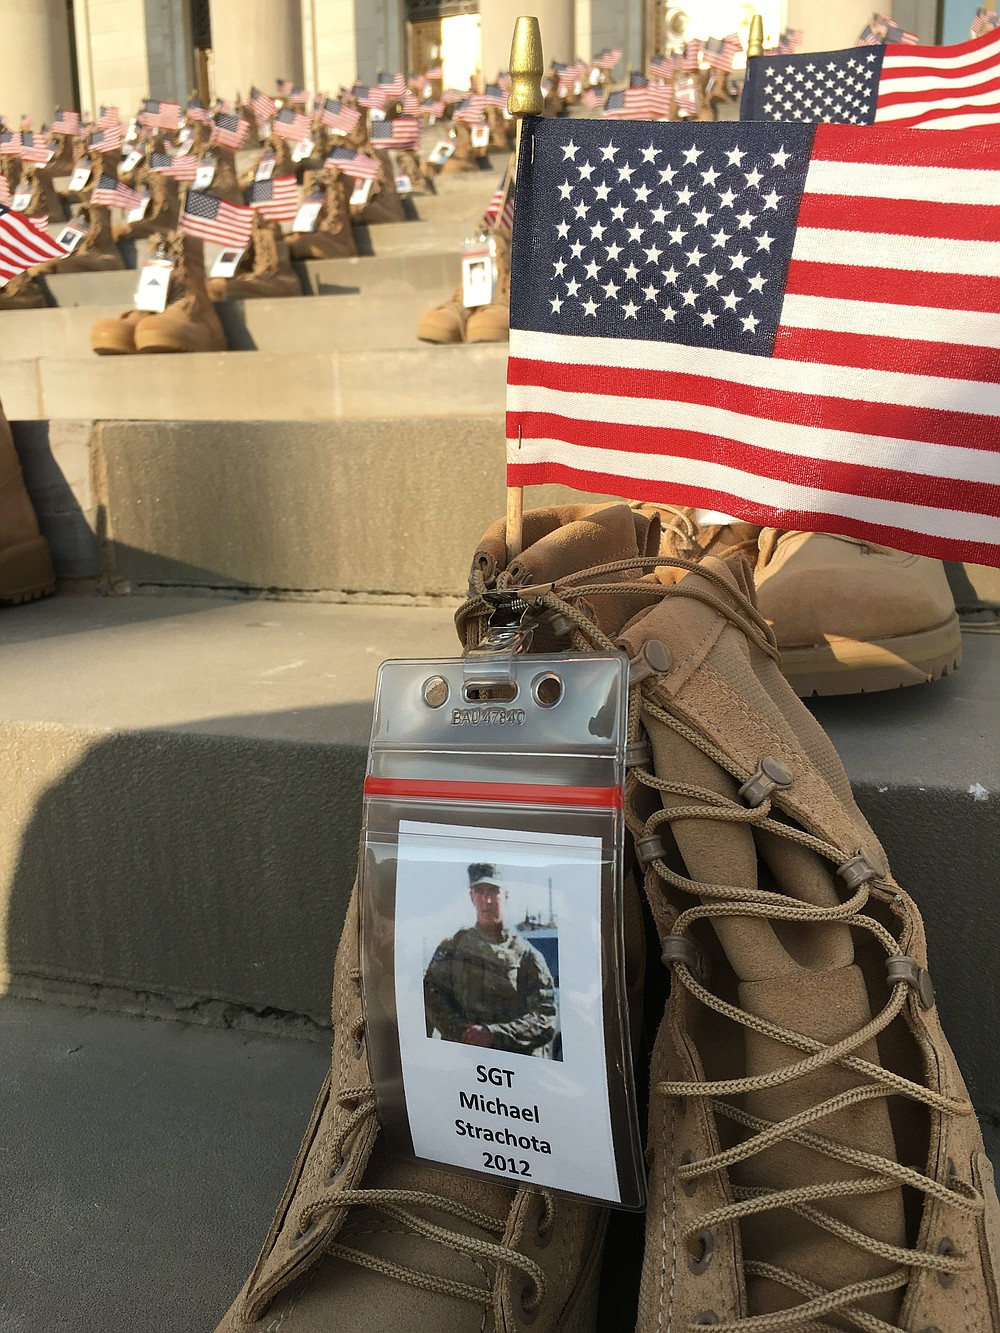 U.S. Army Sgt. Michael J. Strachota from Pine Bluff died June 24, 2012, near Kandahar, Afghanistan. Deborah Horn/Special to The Commercial